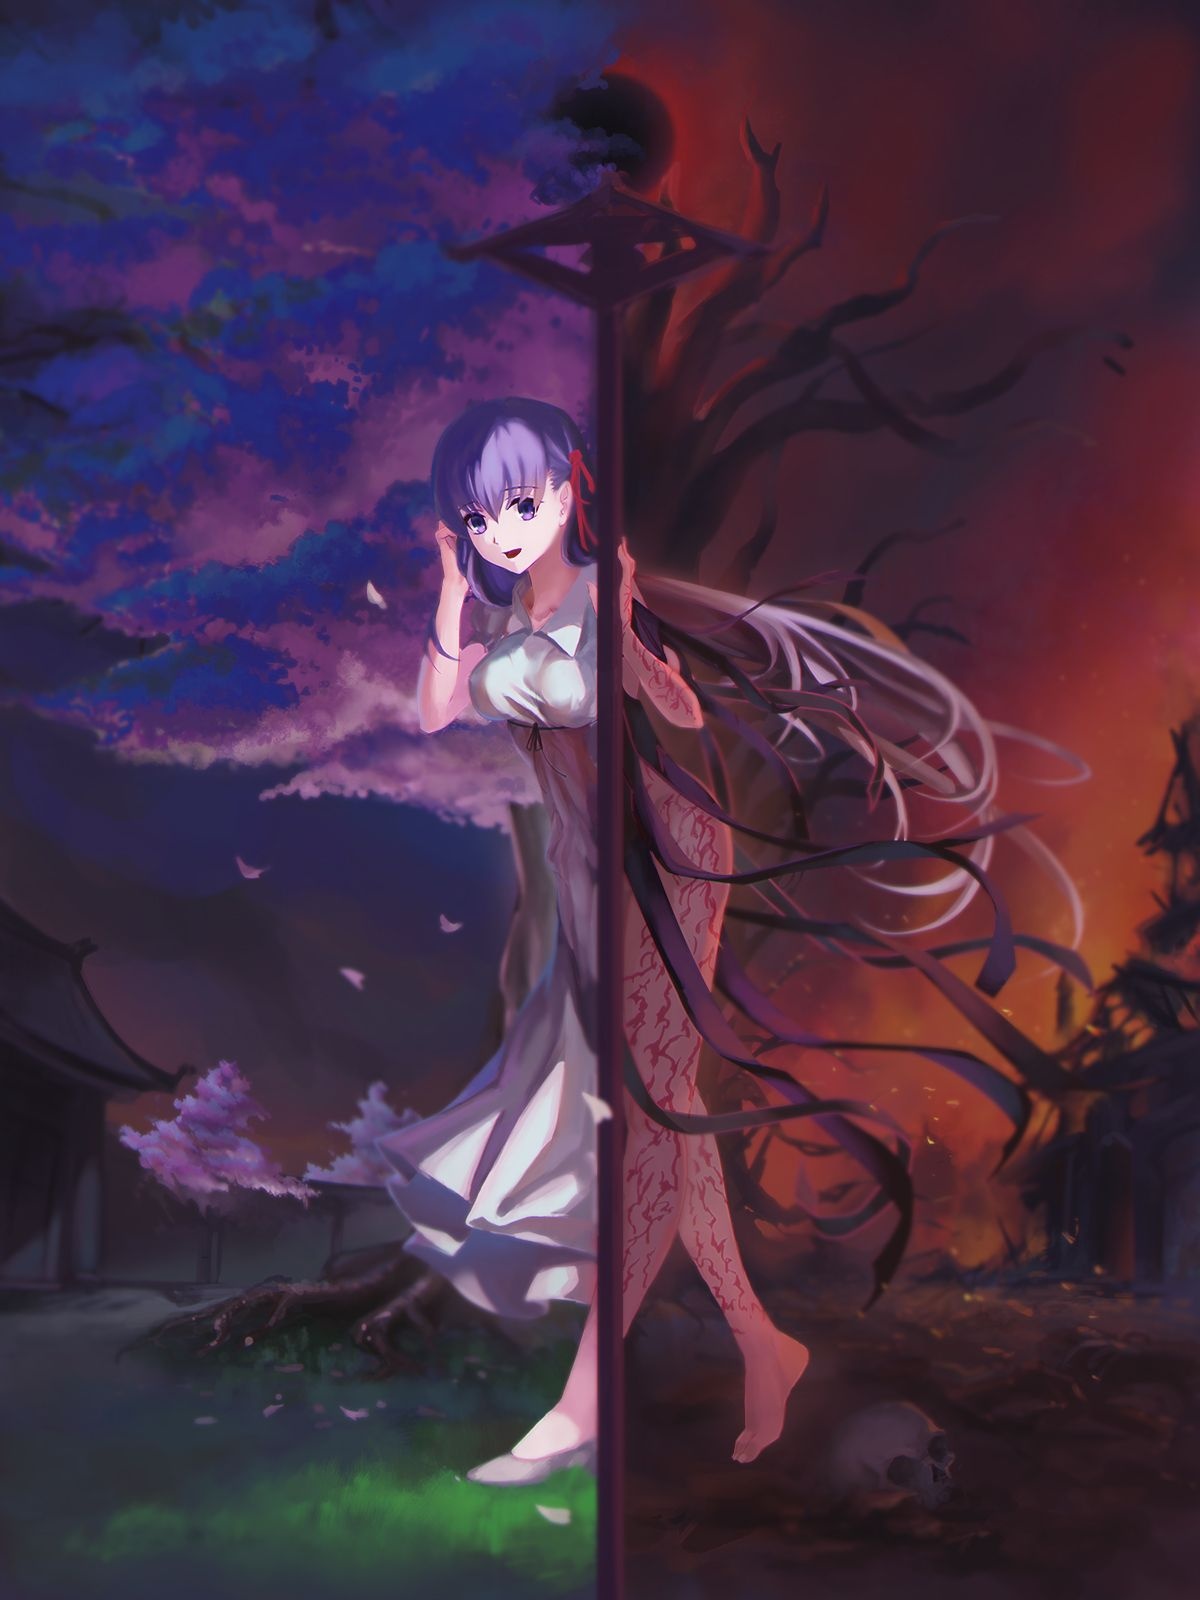 Dark Sakura Matou Sakura Fate Stay Night Sakura Anime Fate Stay Night